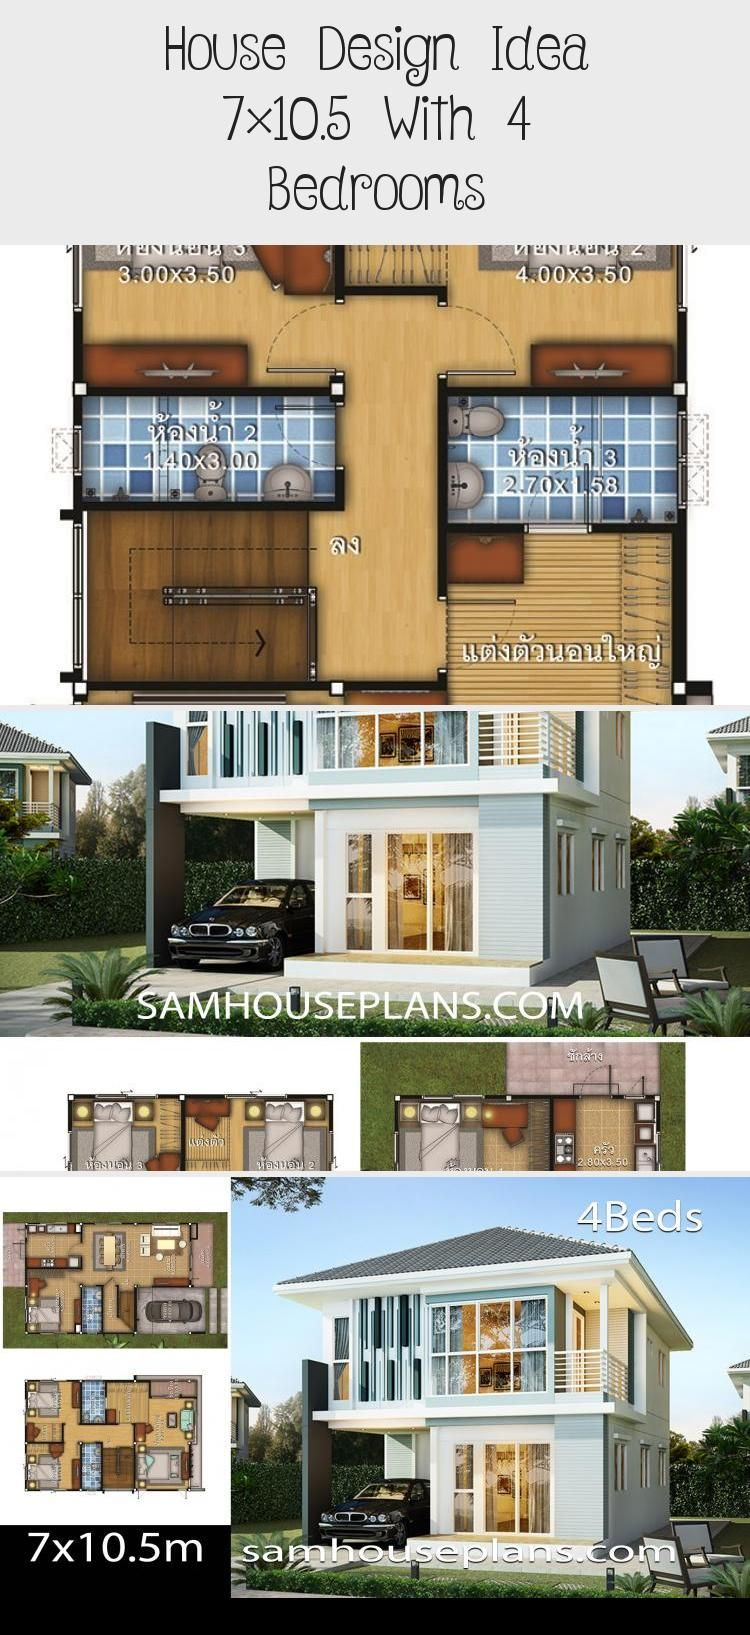 House Design Idea 7 10 5 With 4 Bedrooms In 2020 Unique Small House Plans Small House Plans Country House Plans